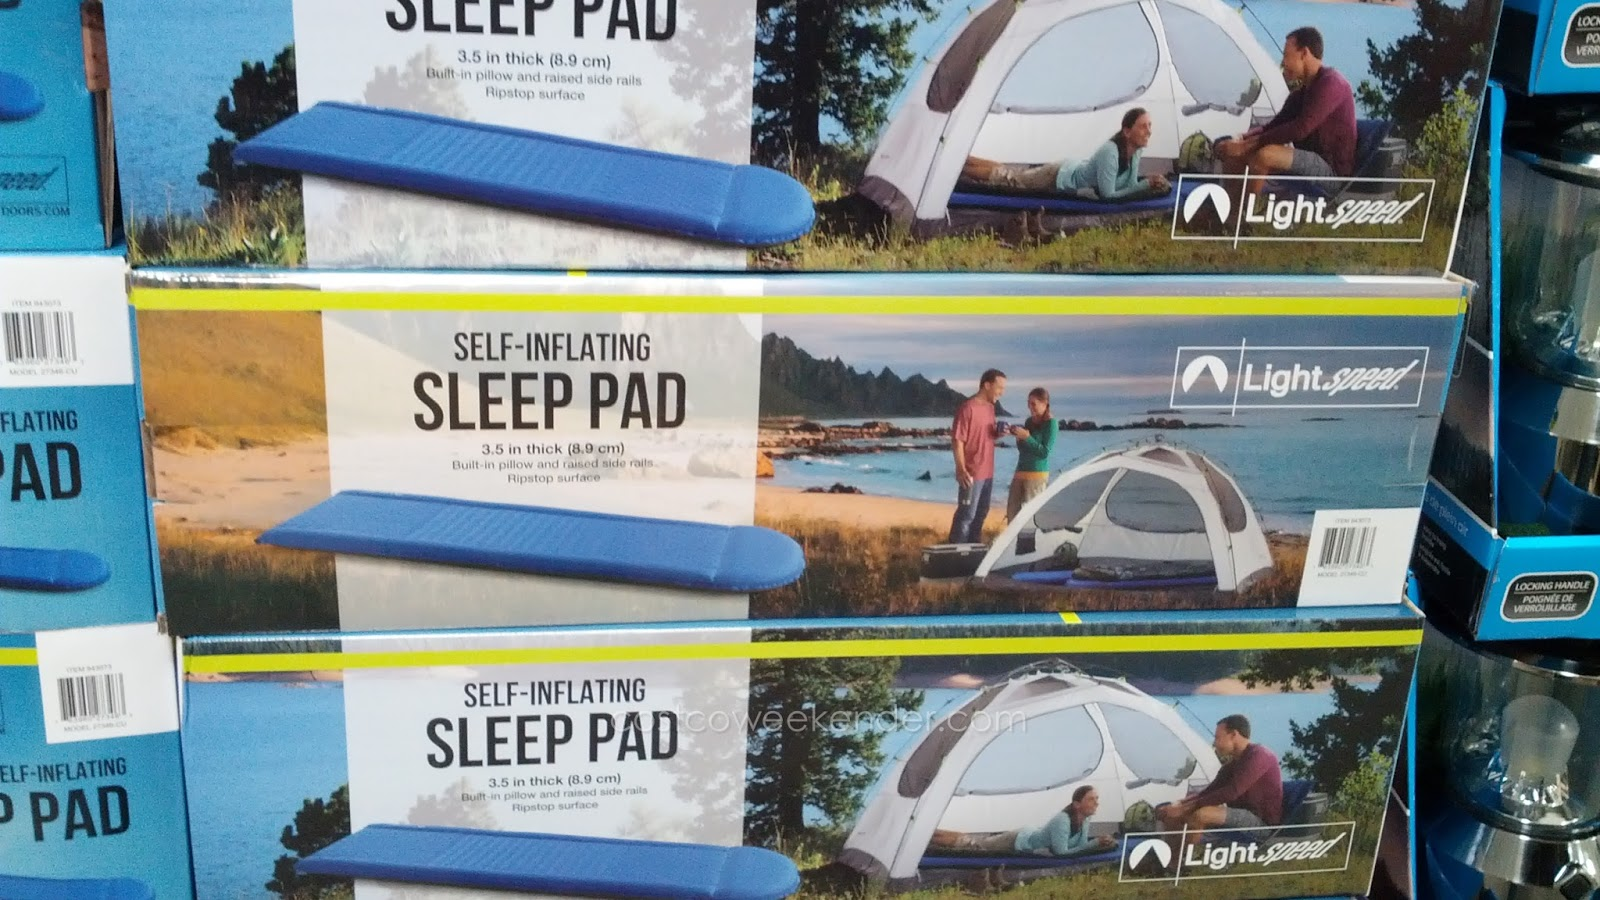 Sleep Well When Camping With The Lightsd Outdoors Self Inflating Pad